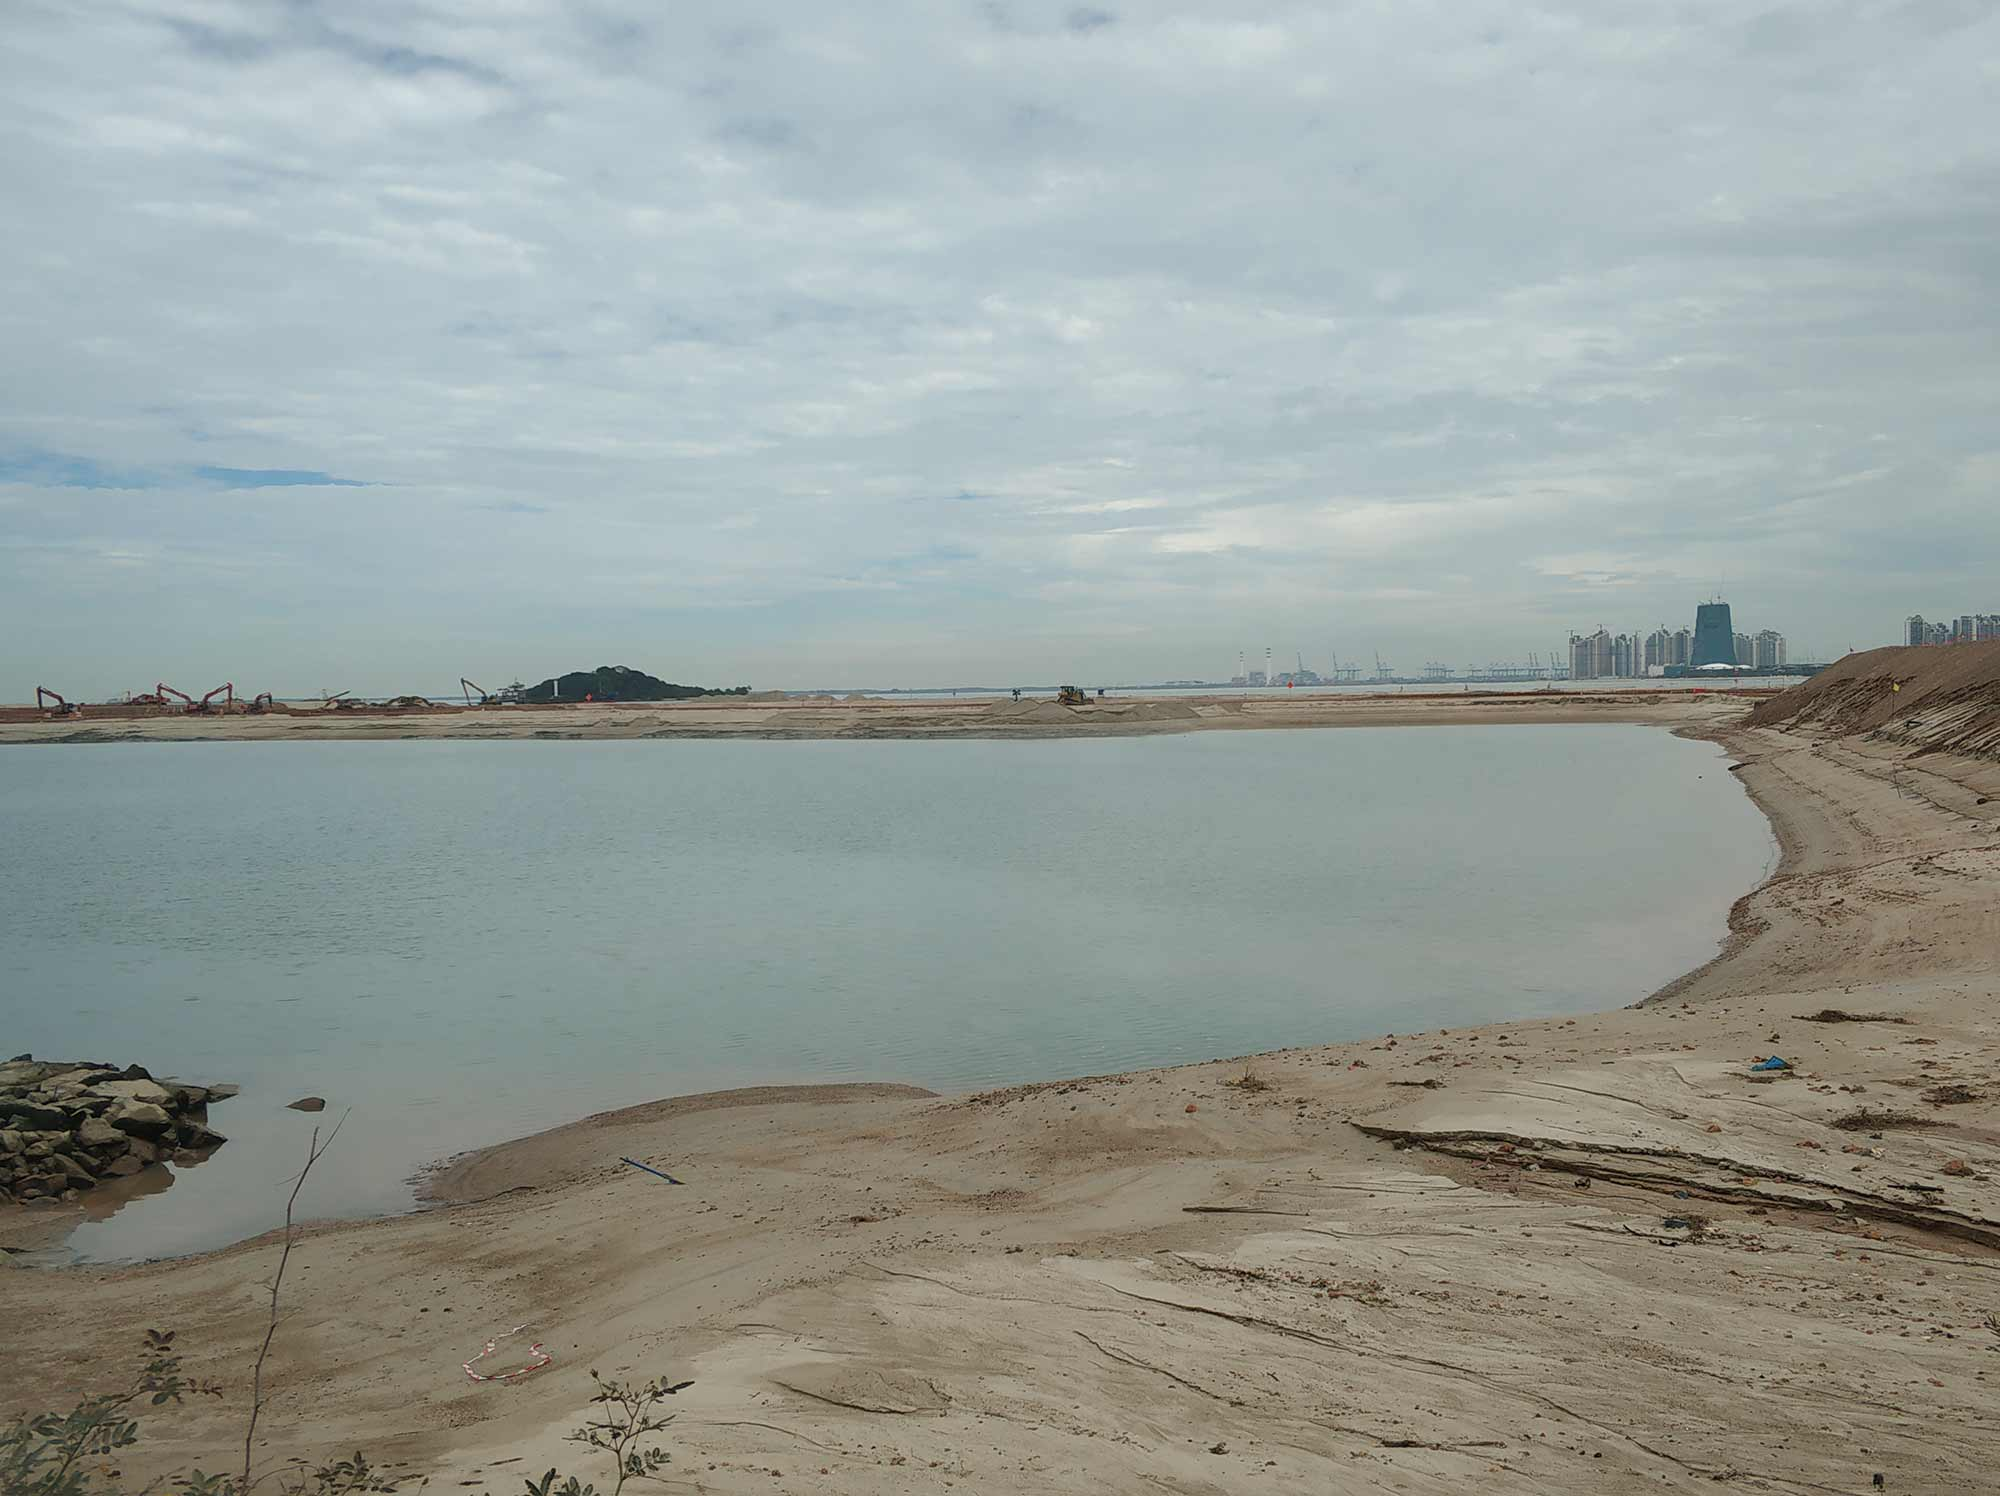 Tuas View reclamation, 2019. Photograph: William Jamieson.